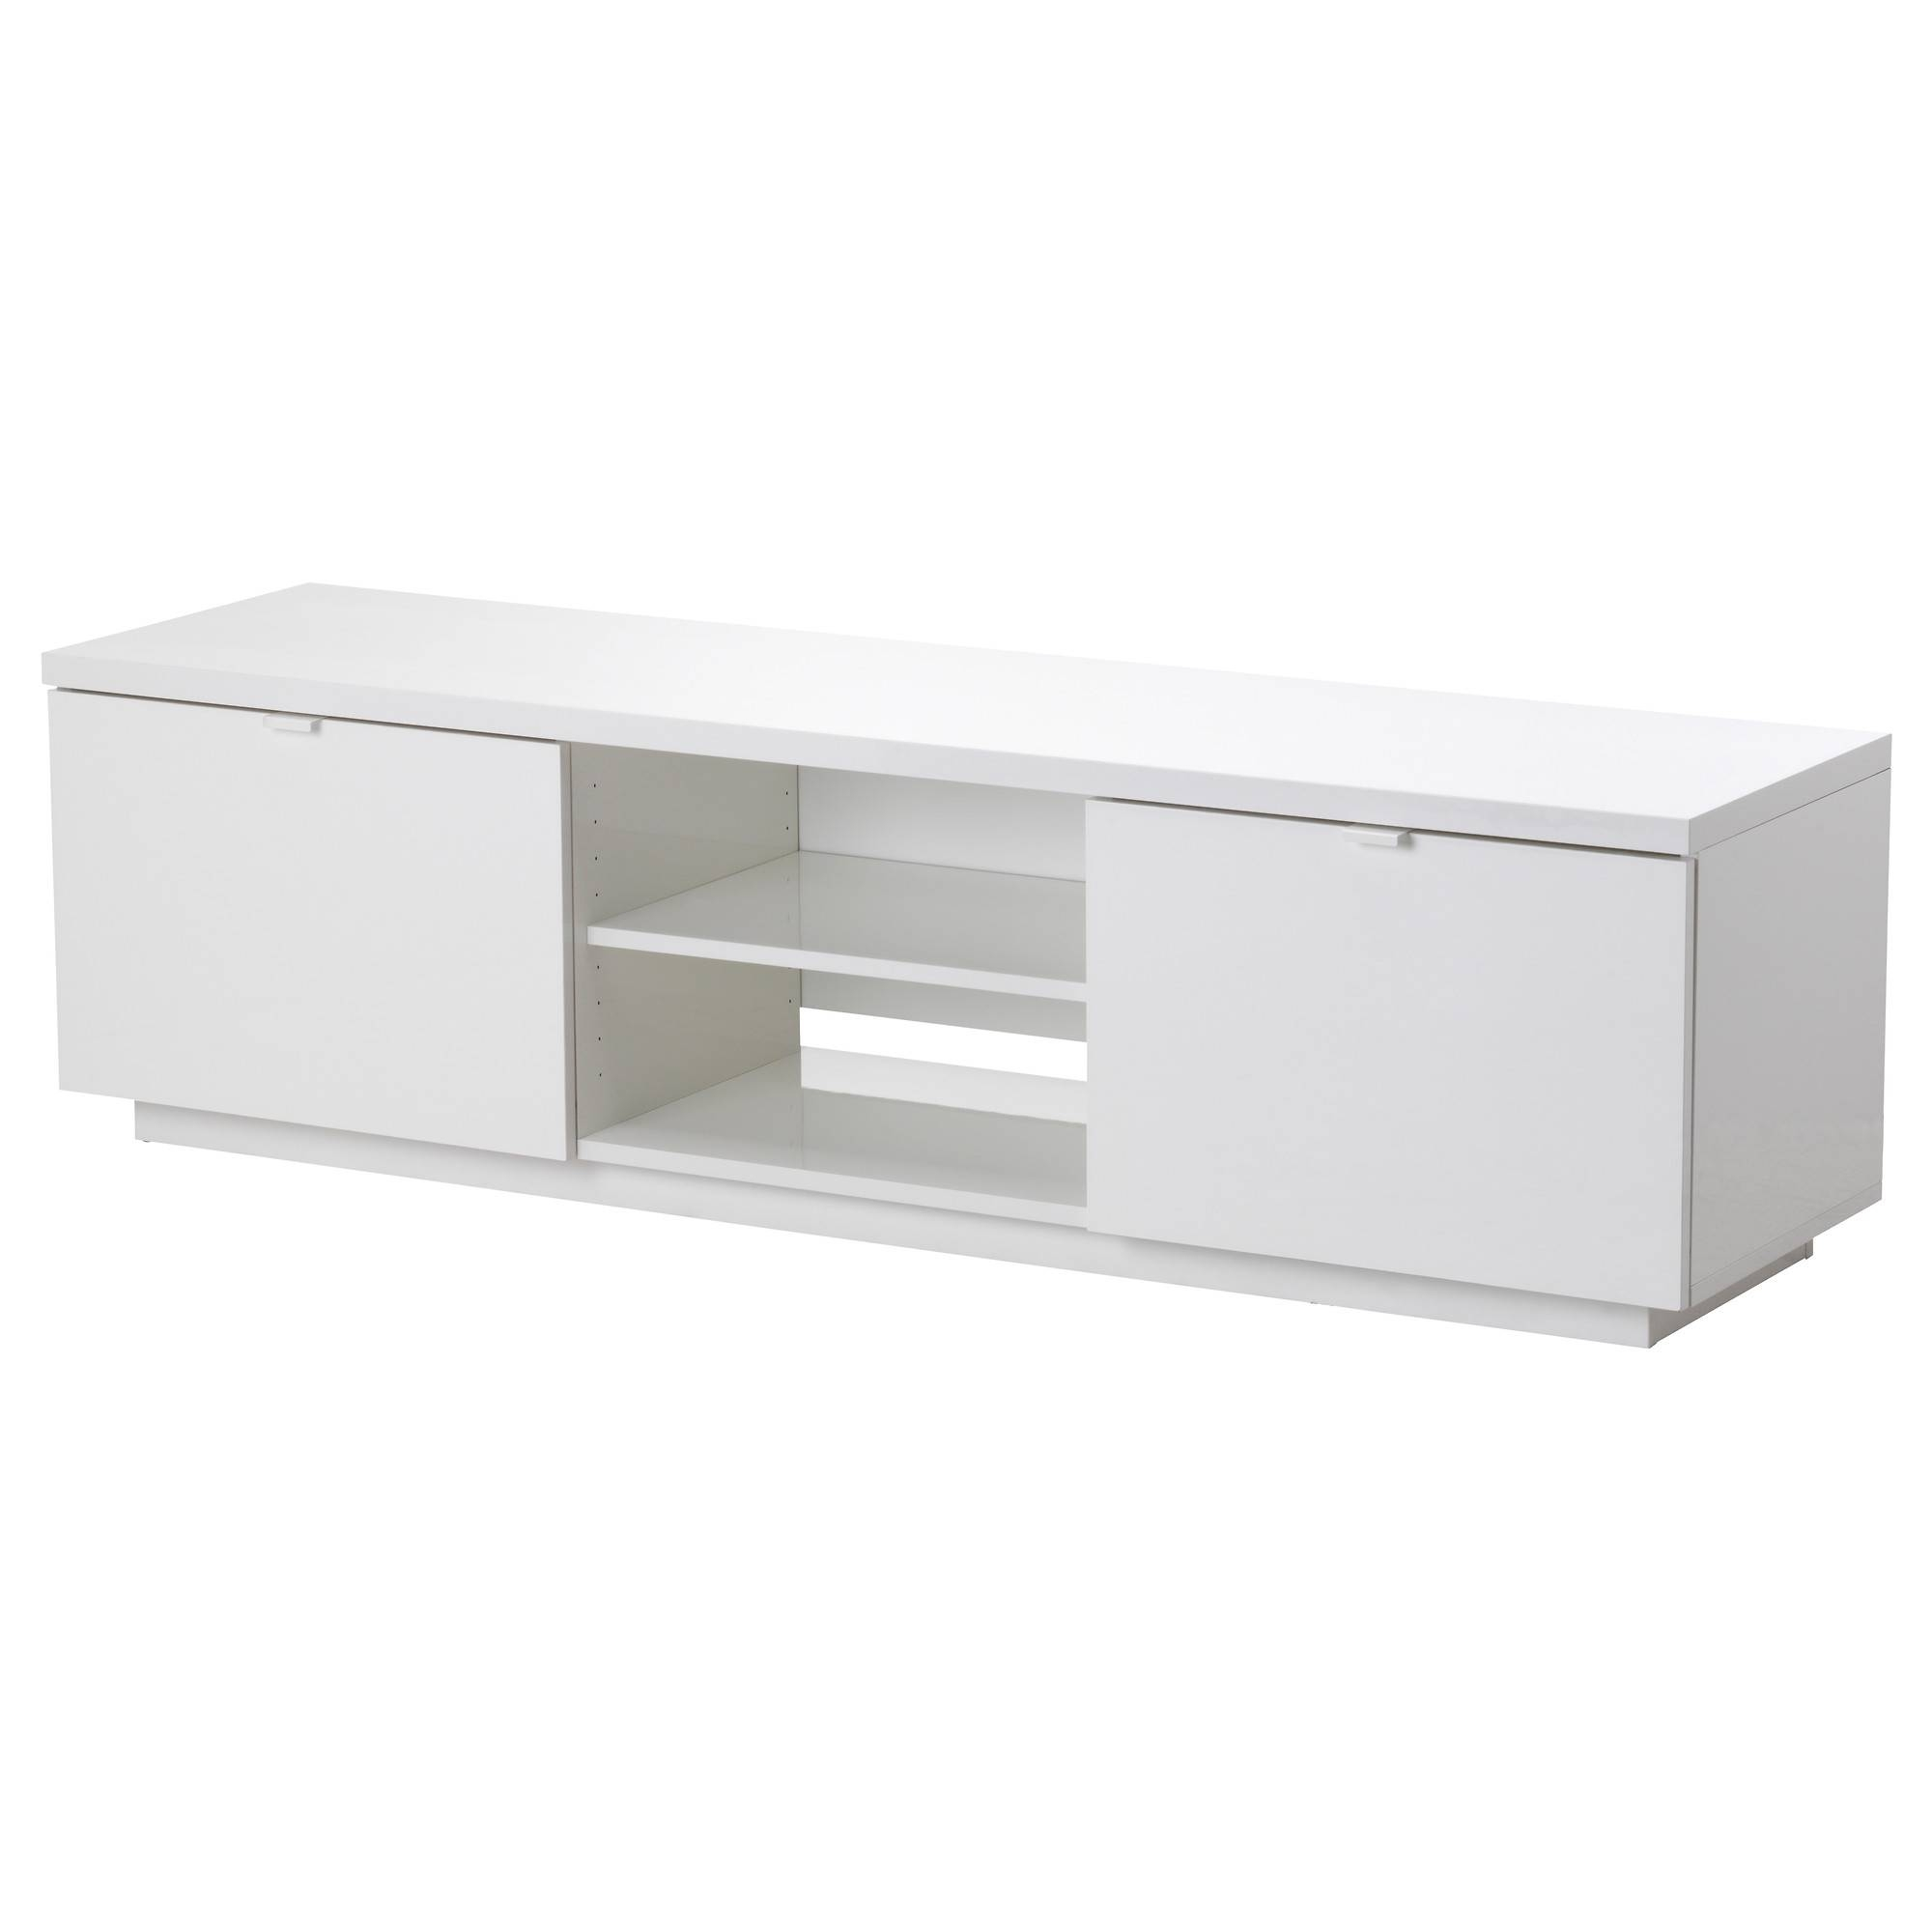 Tv Stands - Ikea inside Long White Tv Stands (Image 14 of 15)